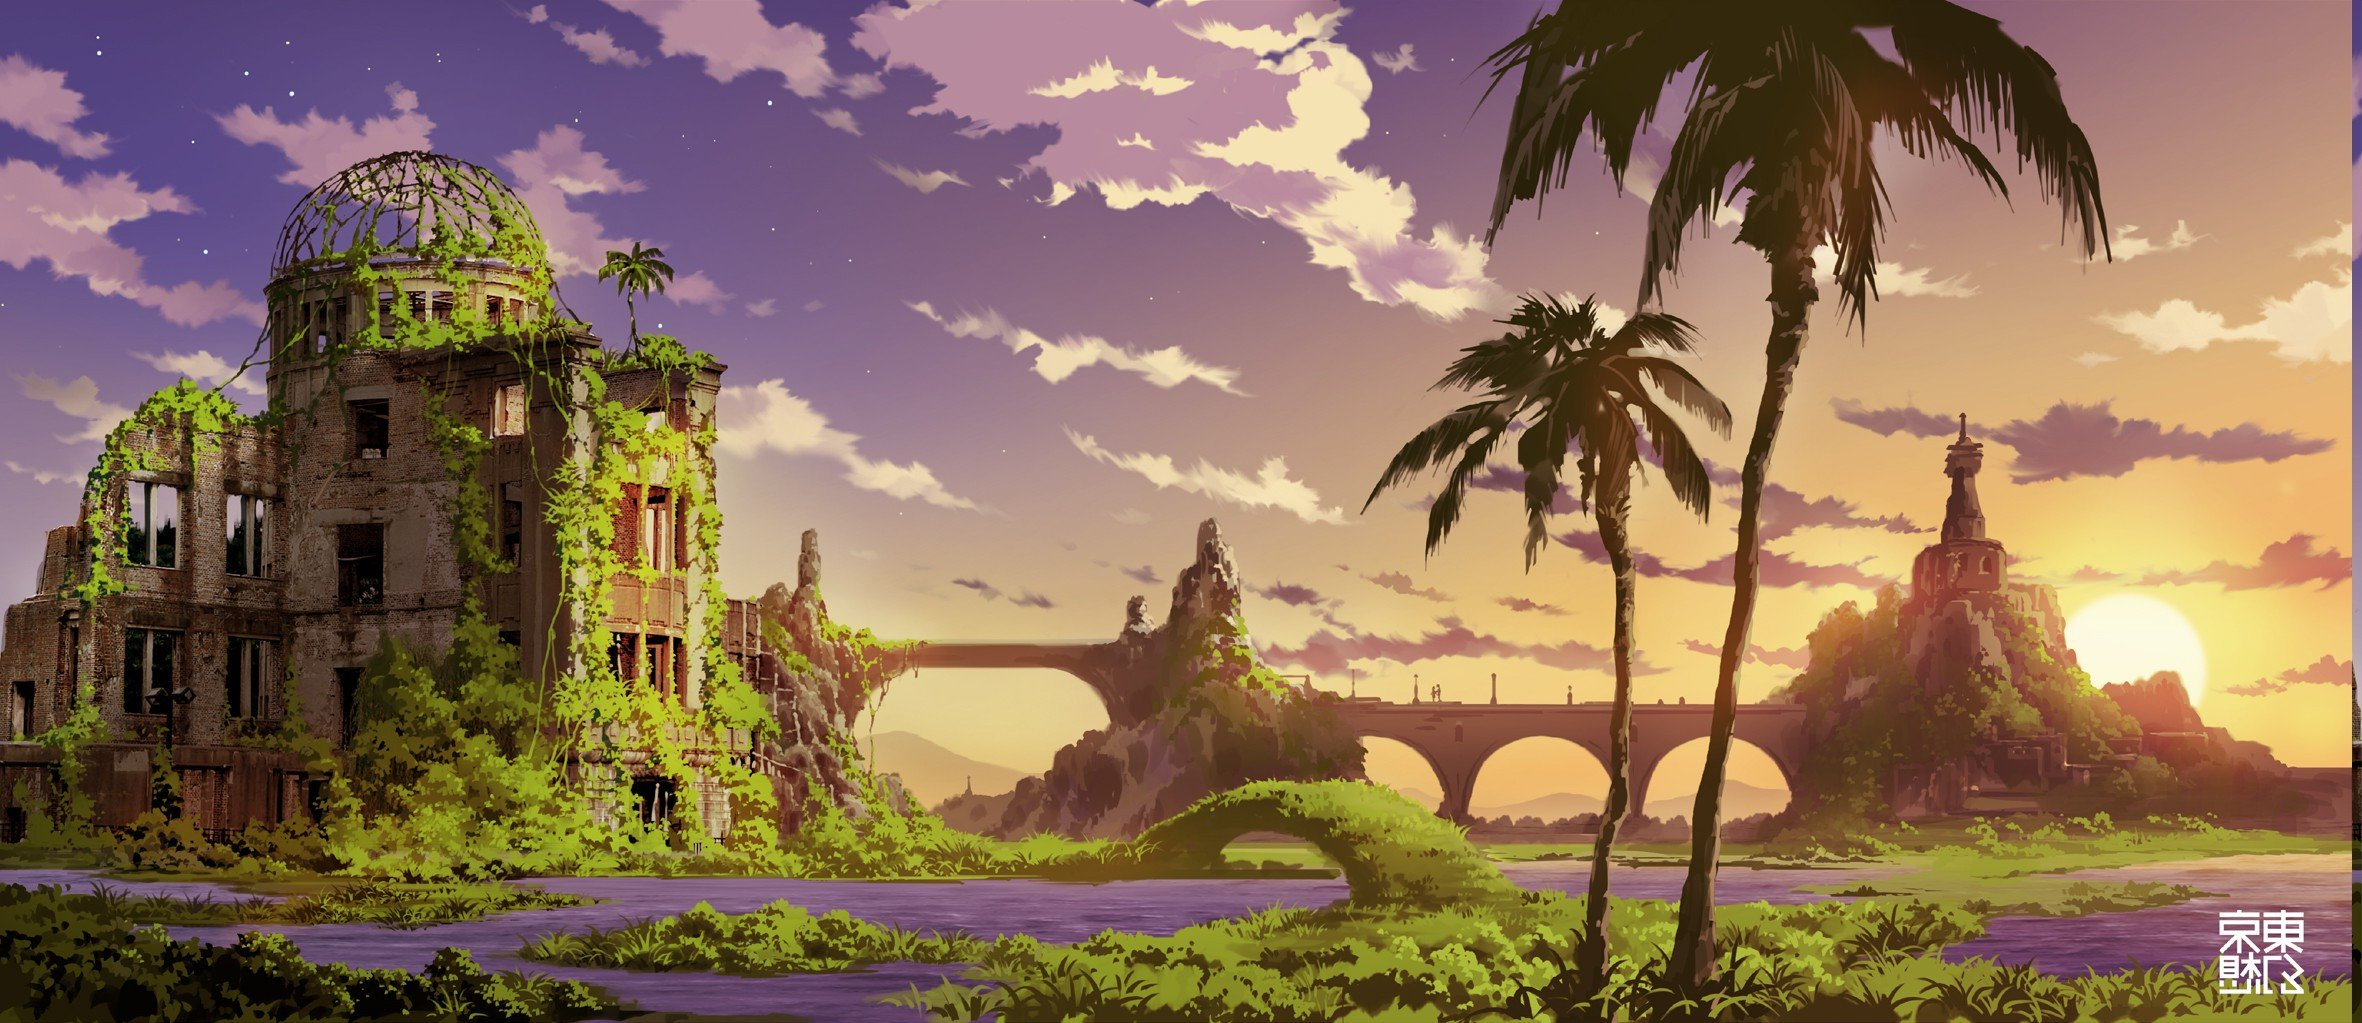 anime Landscape Fantasy Art Wallpapers HD Desktop and Mobile 2362x1023